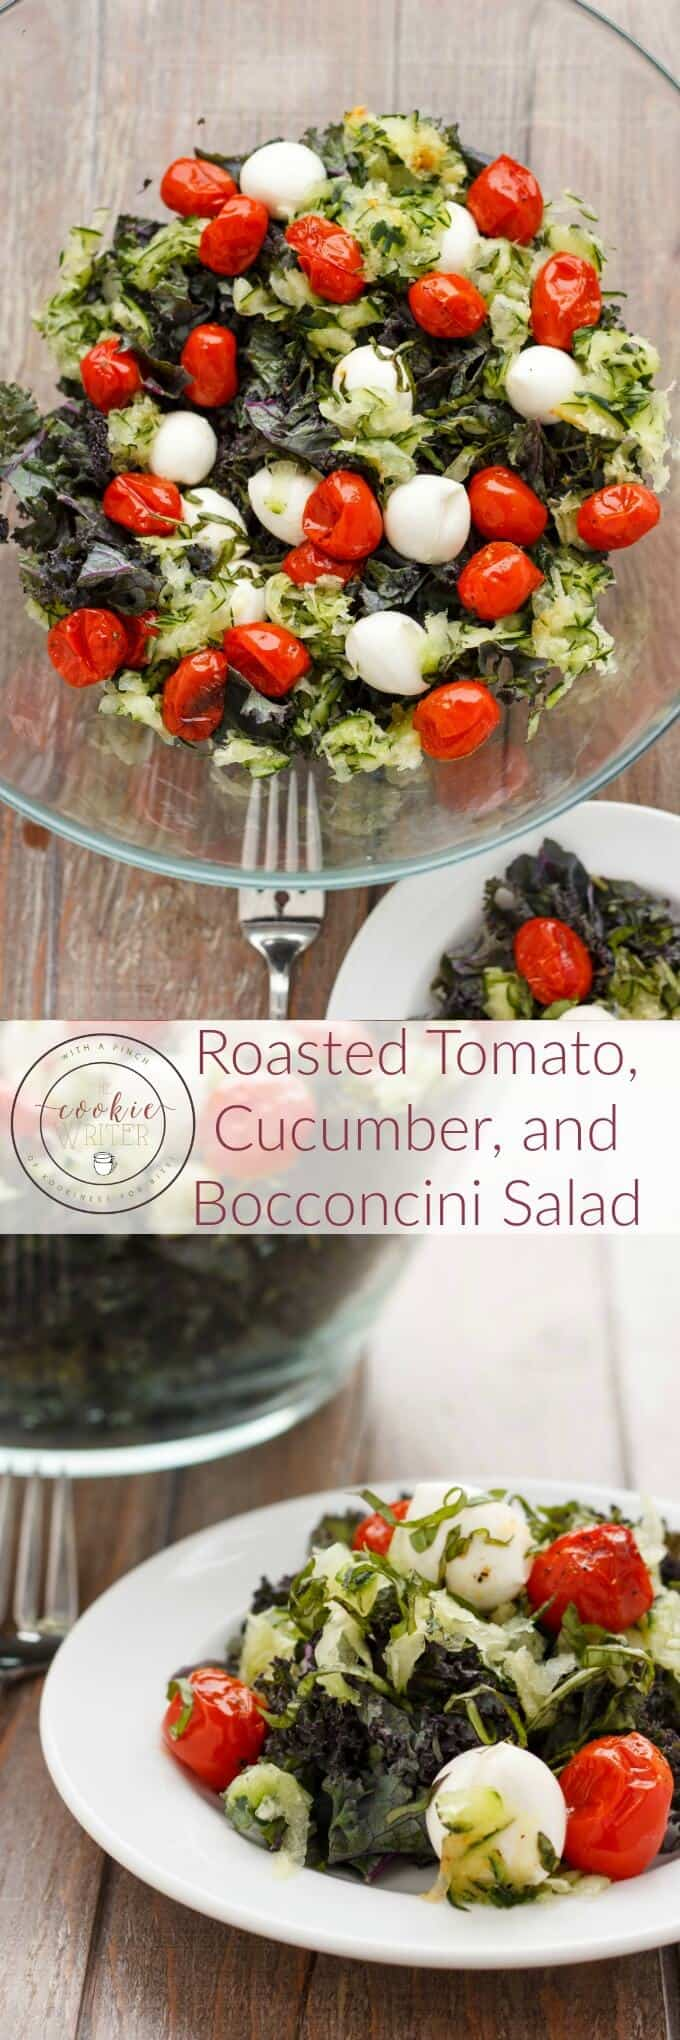 Roasted Tomato, Cucumber, and Bocconcini Salad